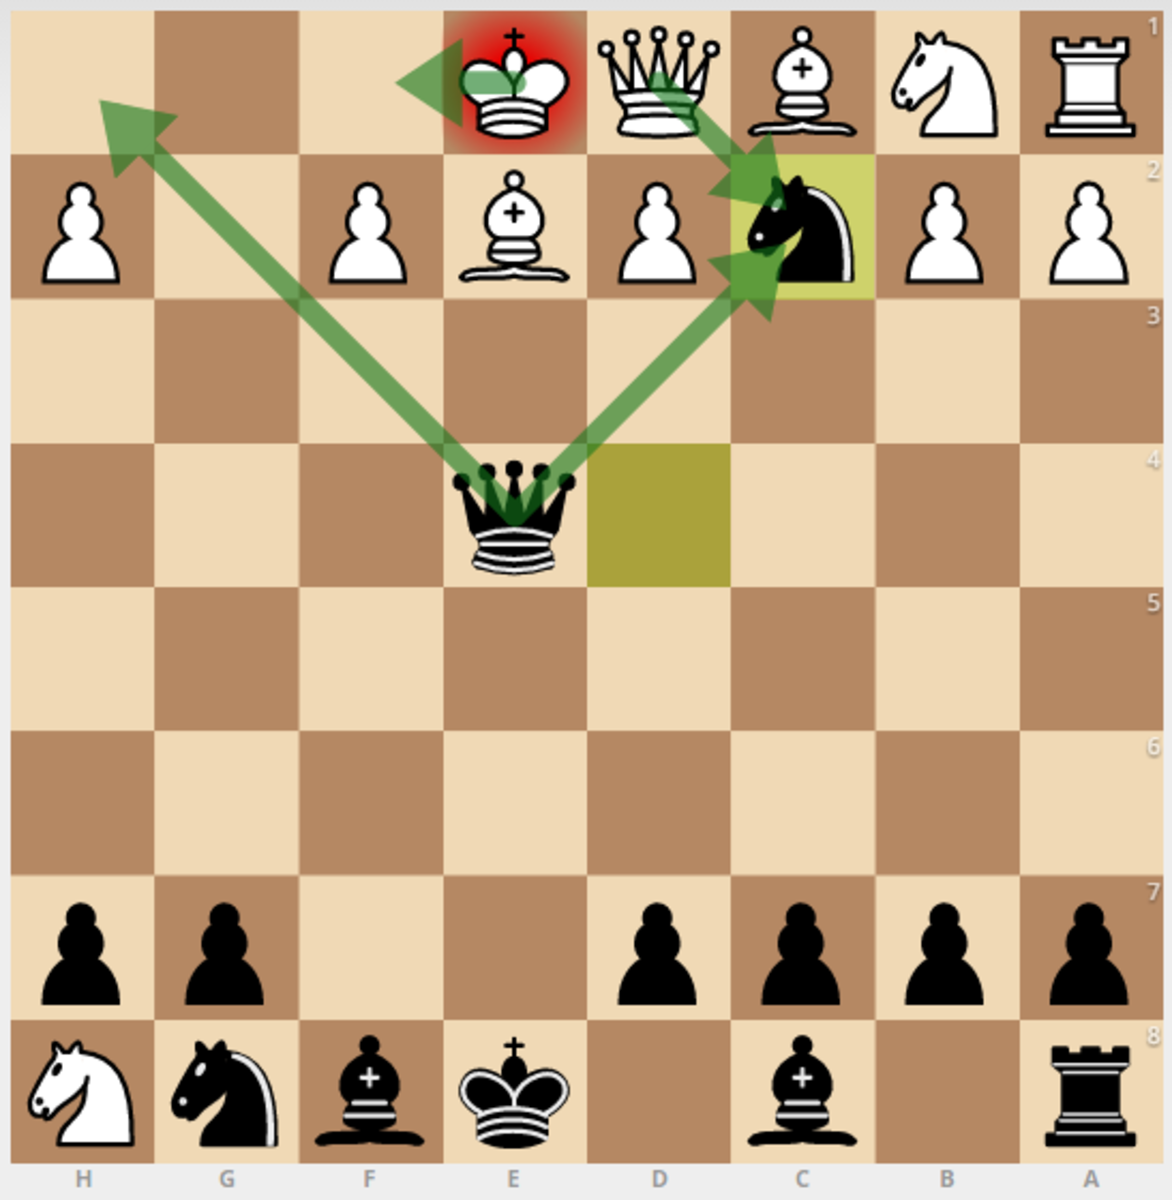 2 options for white, Qxc2 or Kf1